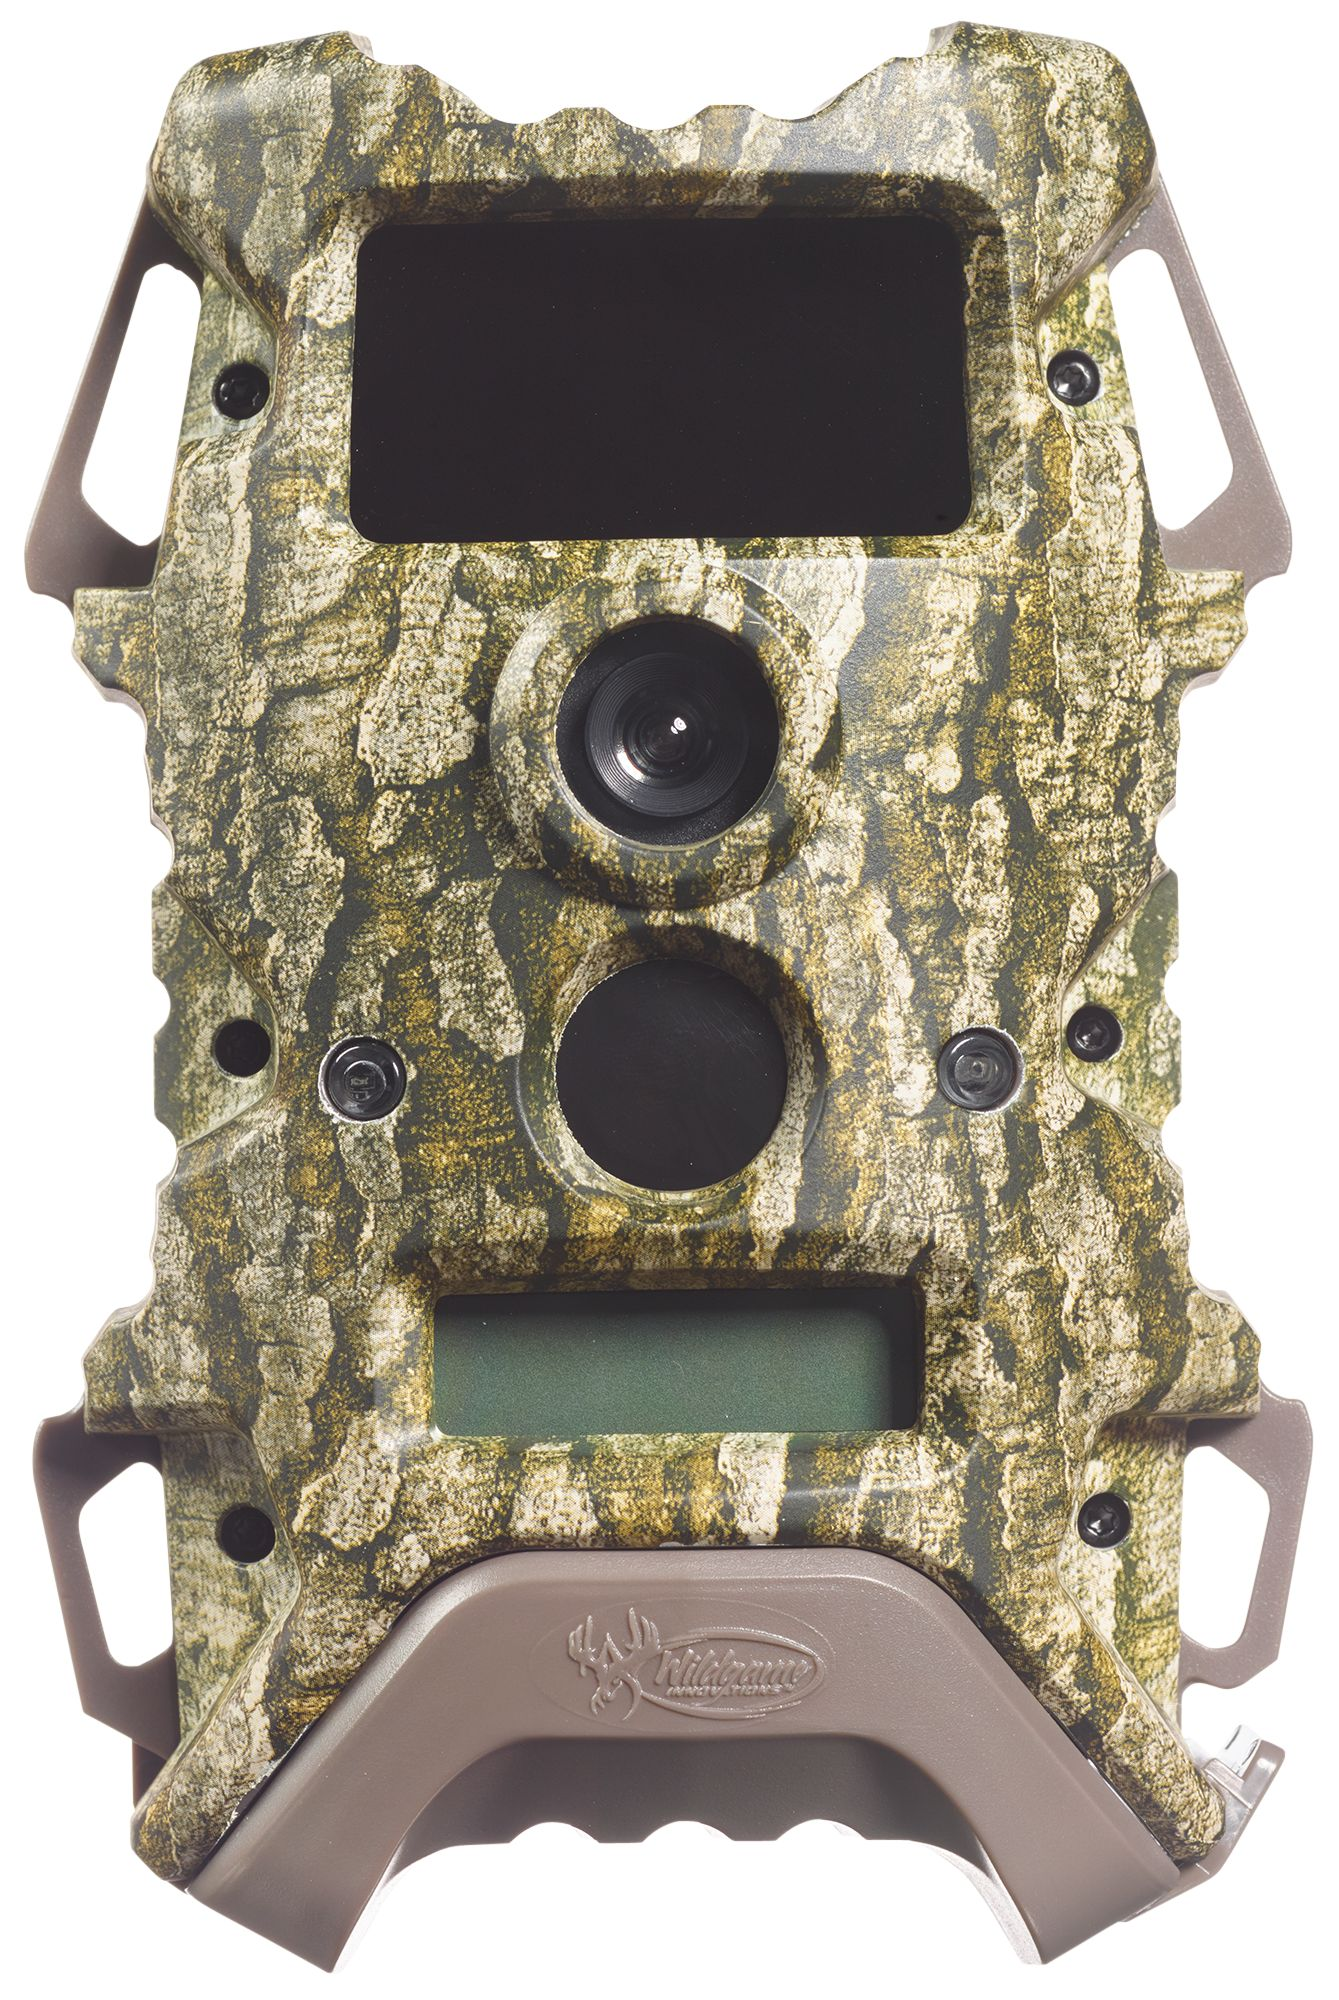 Game on closeouts sporting goods - Product Image Wildgame Innovations Terra Lightsout Trail Camera 10mp